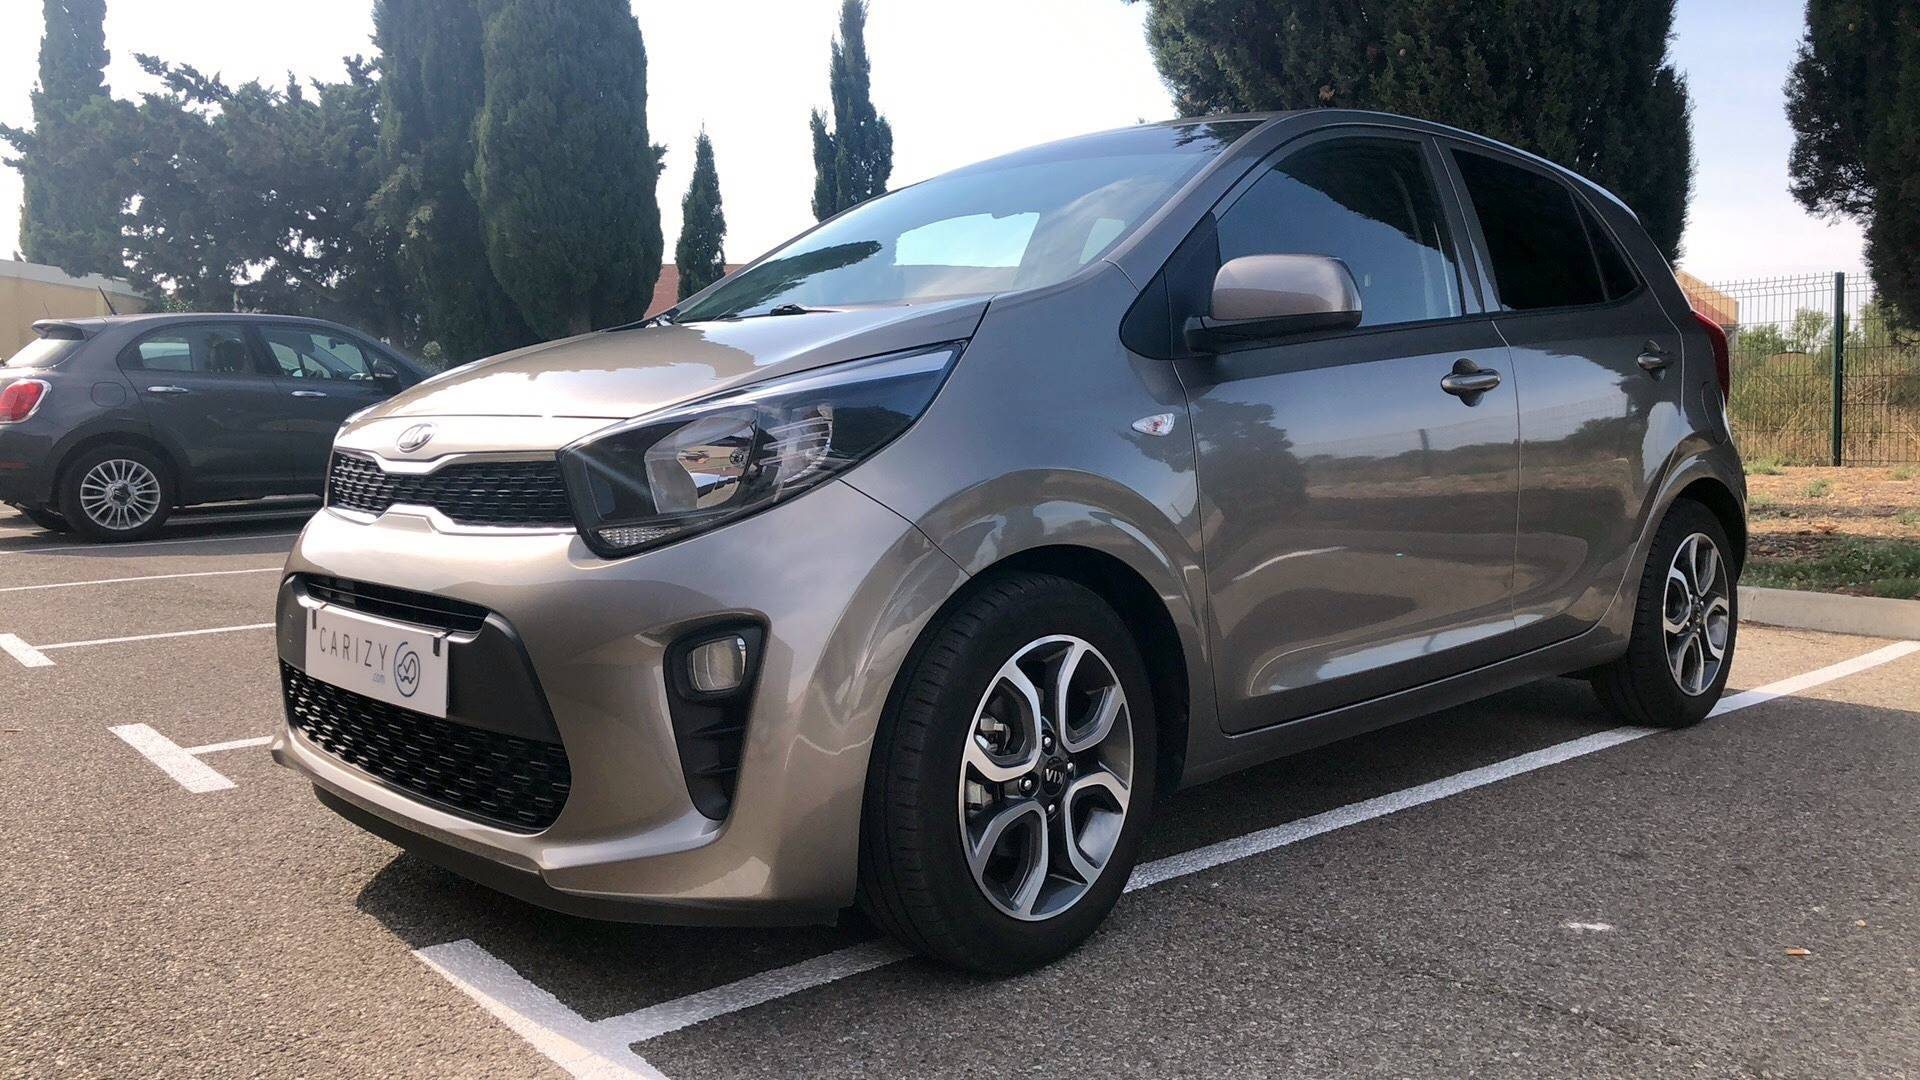 kia picanto d u0026 39 occasion 1 0 65 launch edition istres